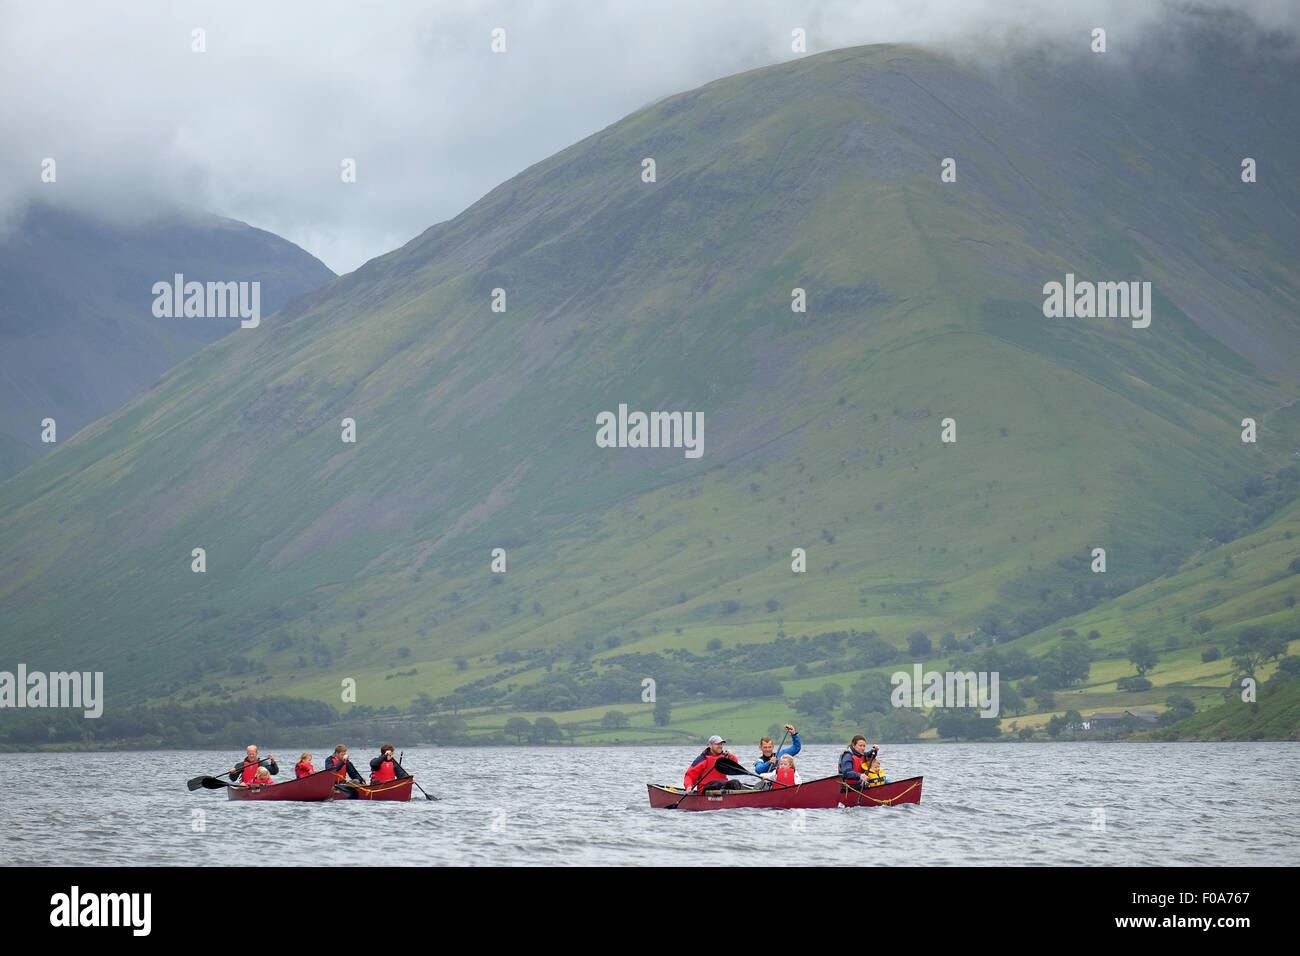 A group of people in canoe boats on Wastwater in the Lake District, Cumbria, UK Stock Photo